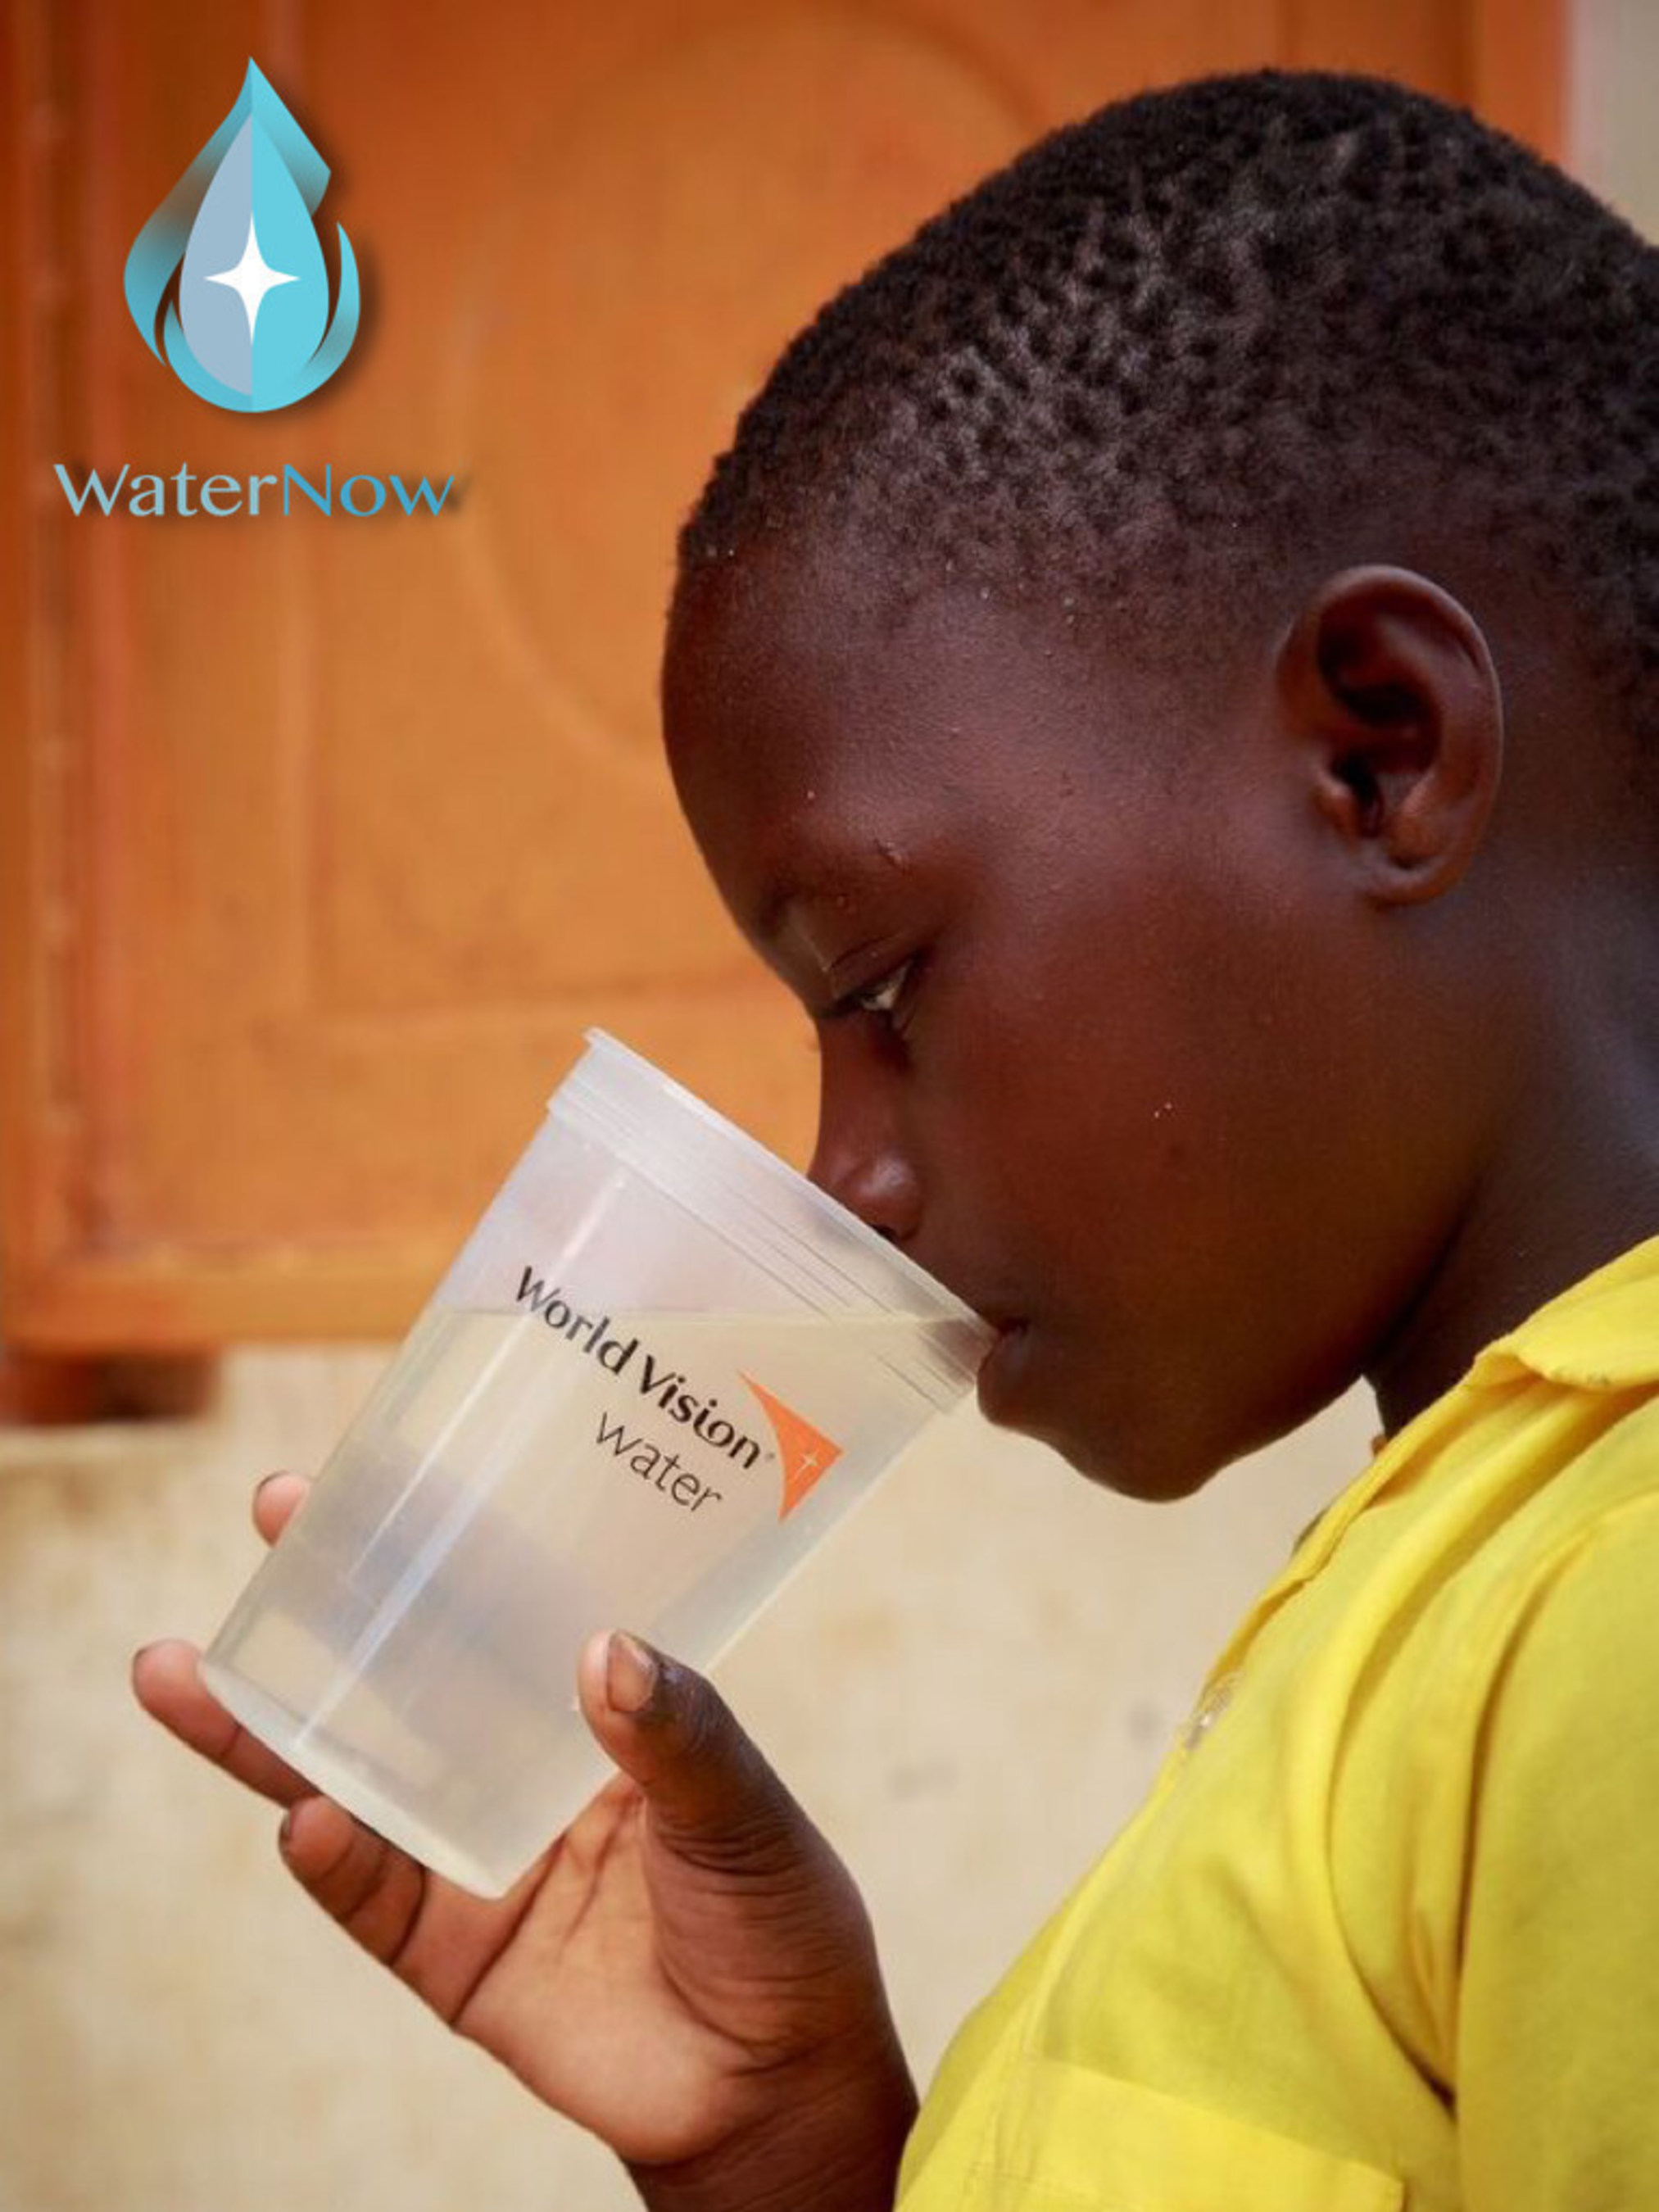 Water Now provides a child in Kenya with clean water on UN World Water Day via World Vision Water